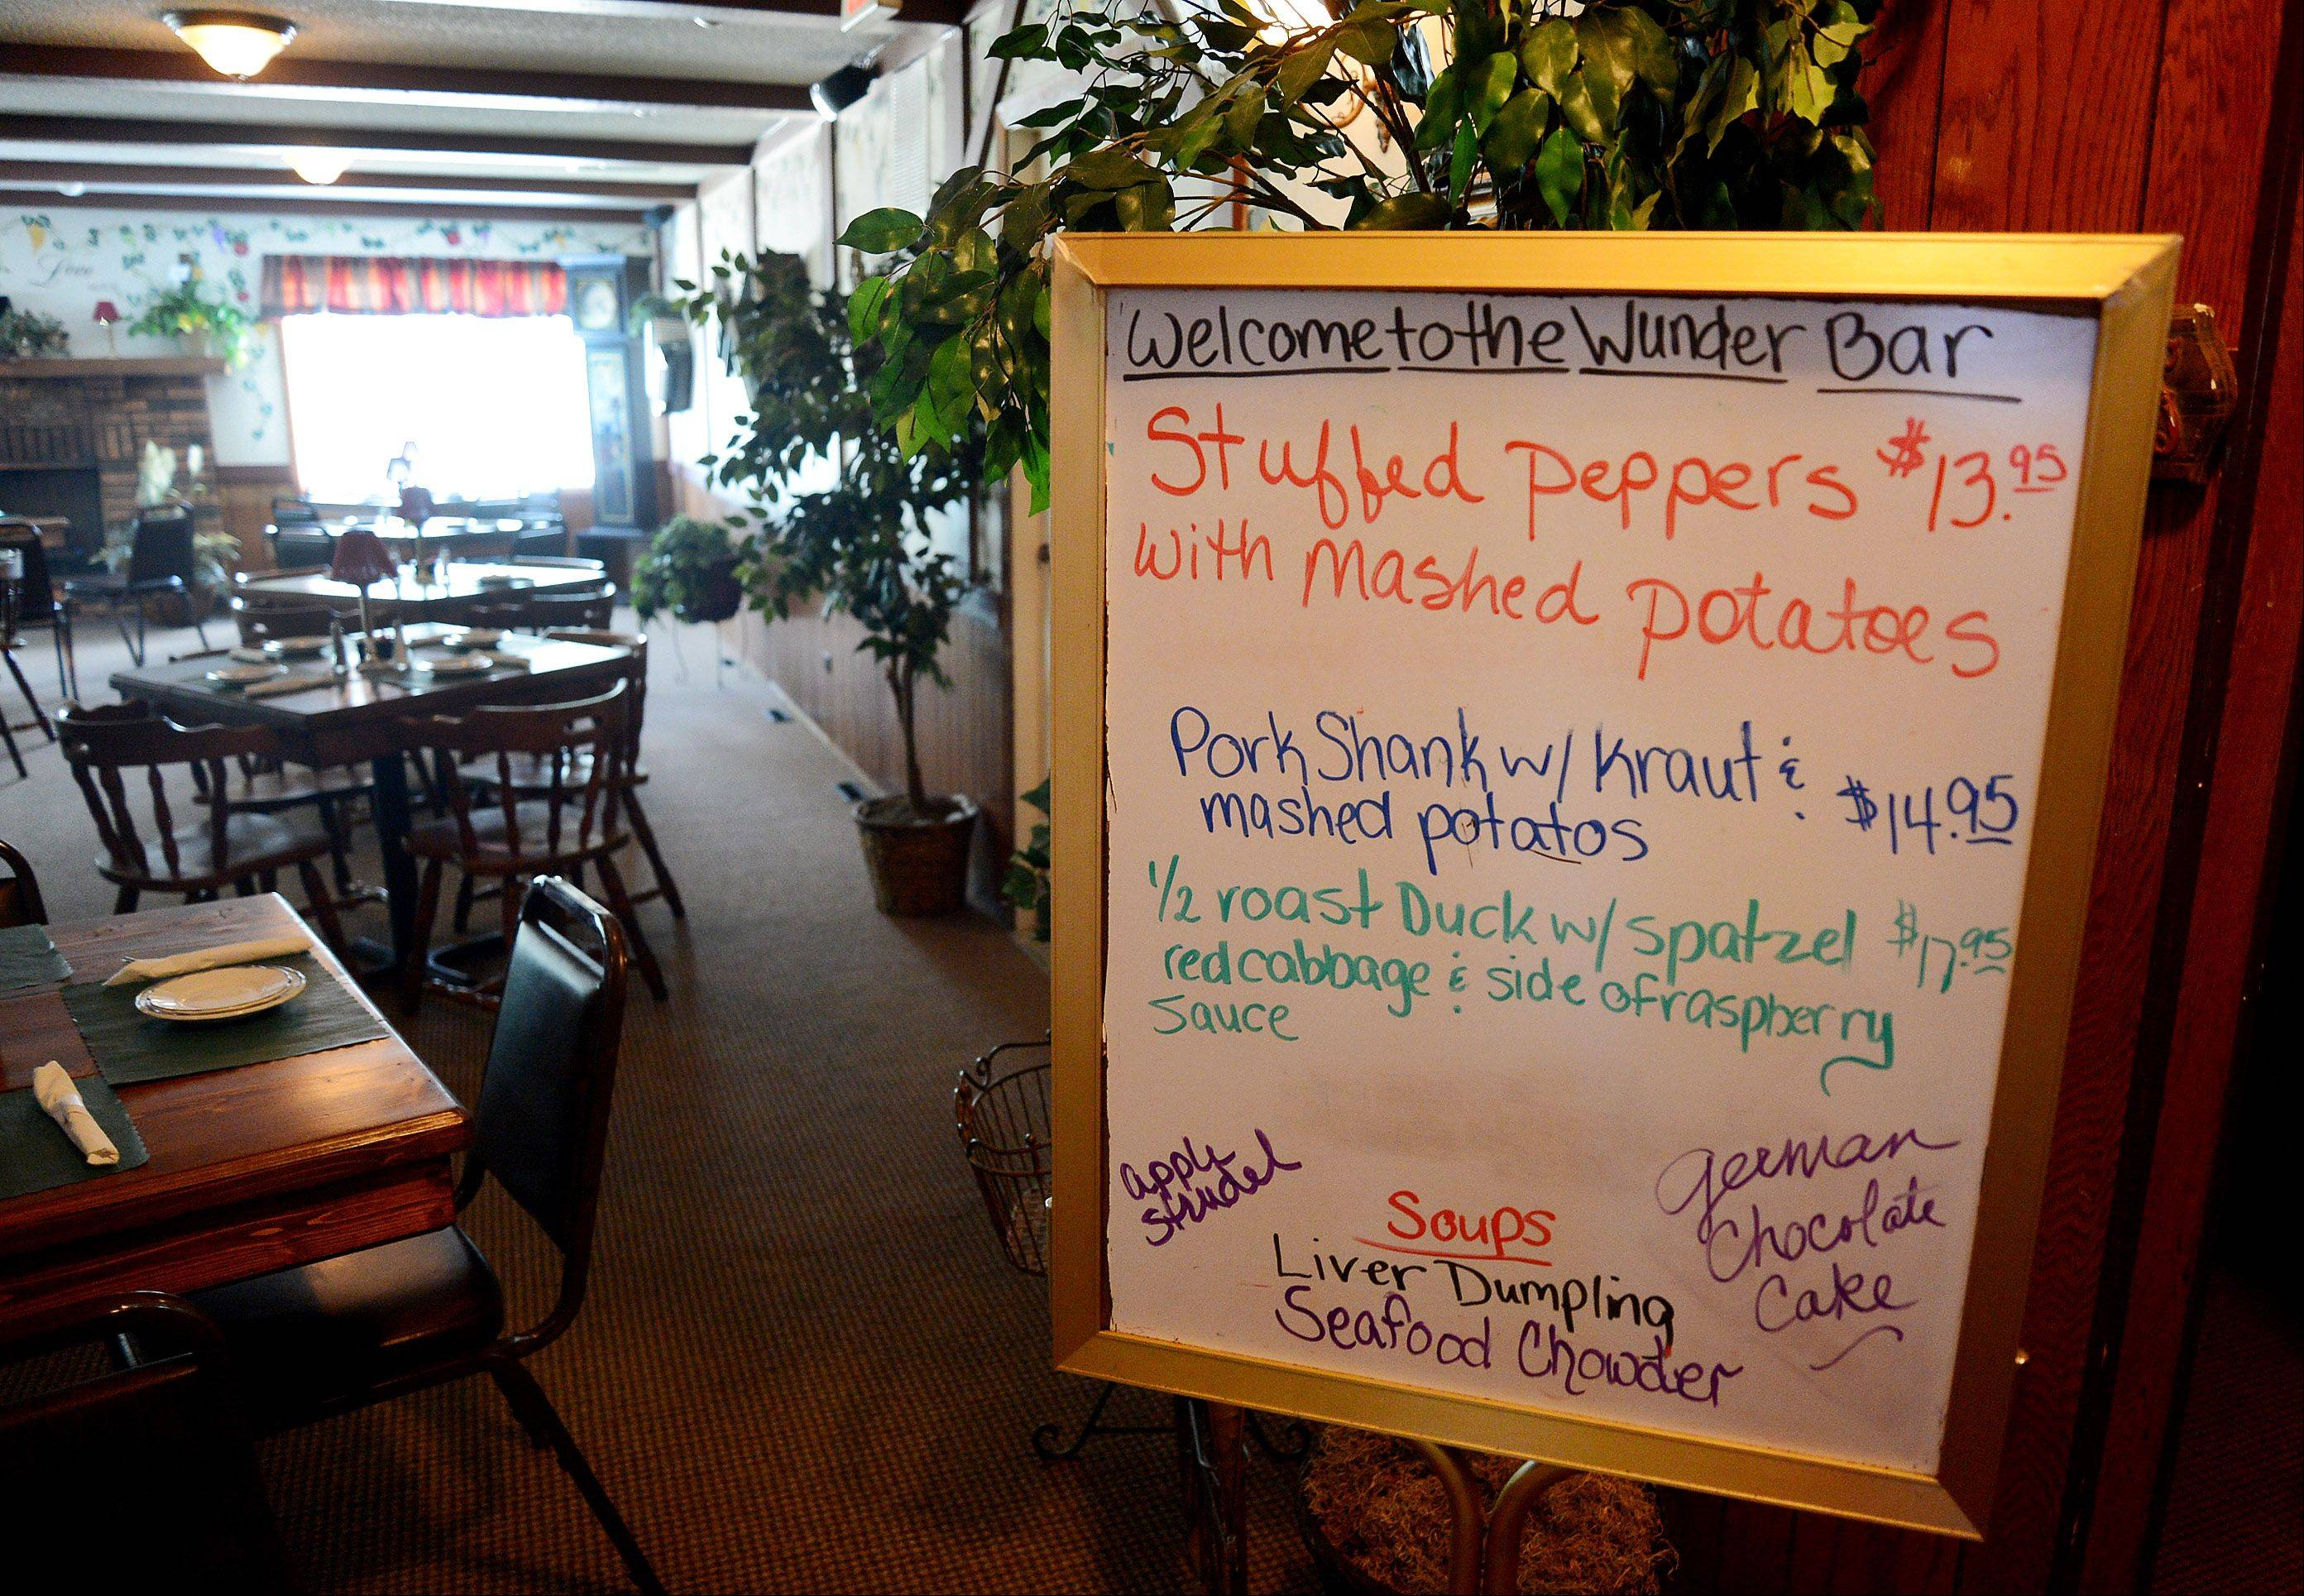 Specials are posted at the entrance to Wunder-Bar's dining room.